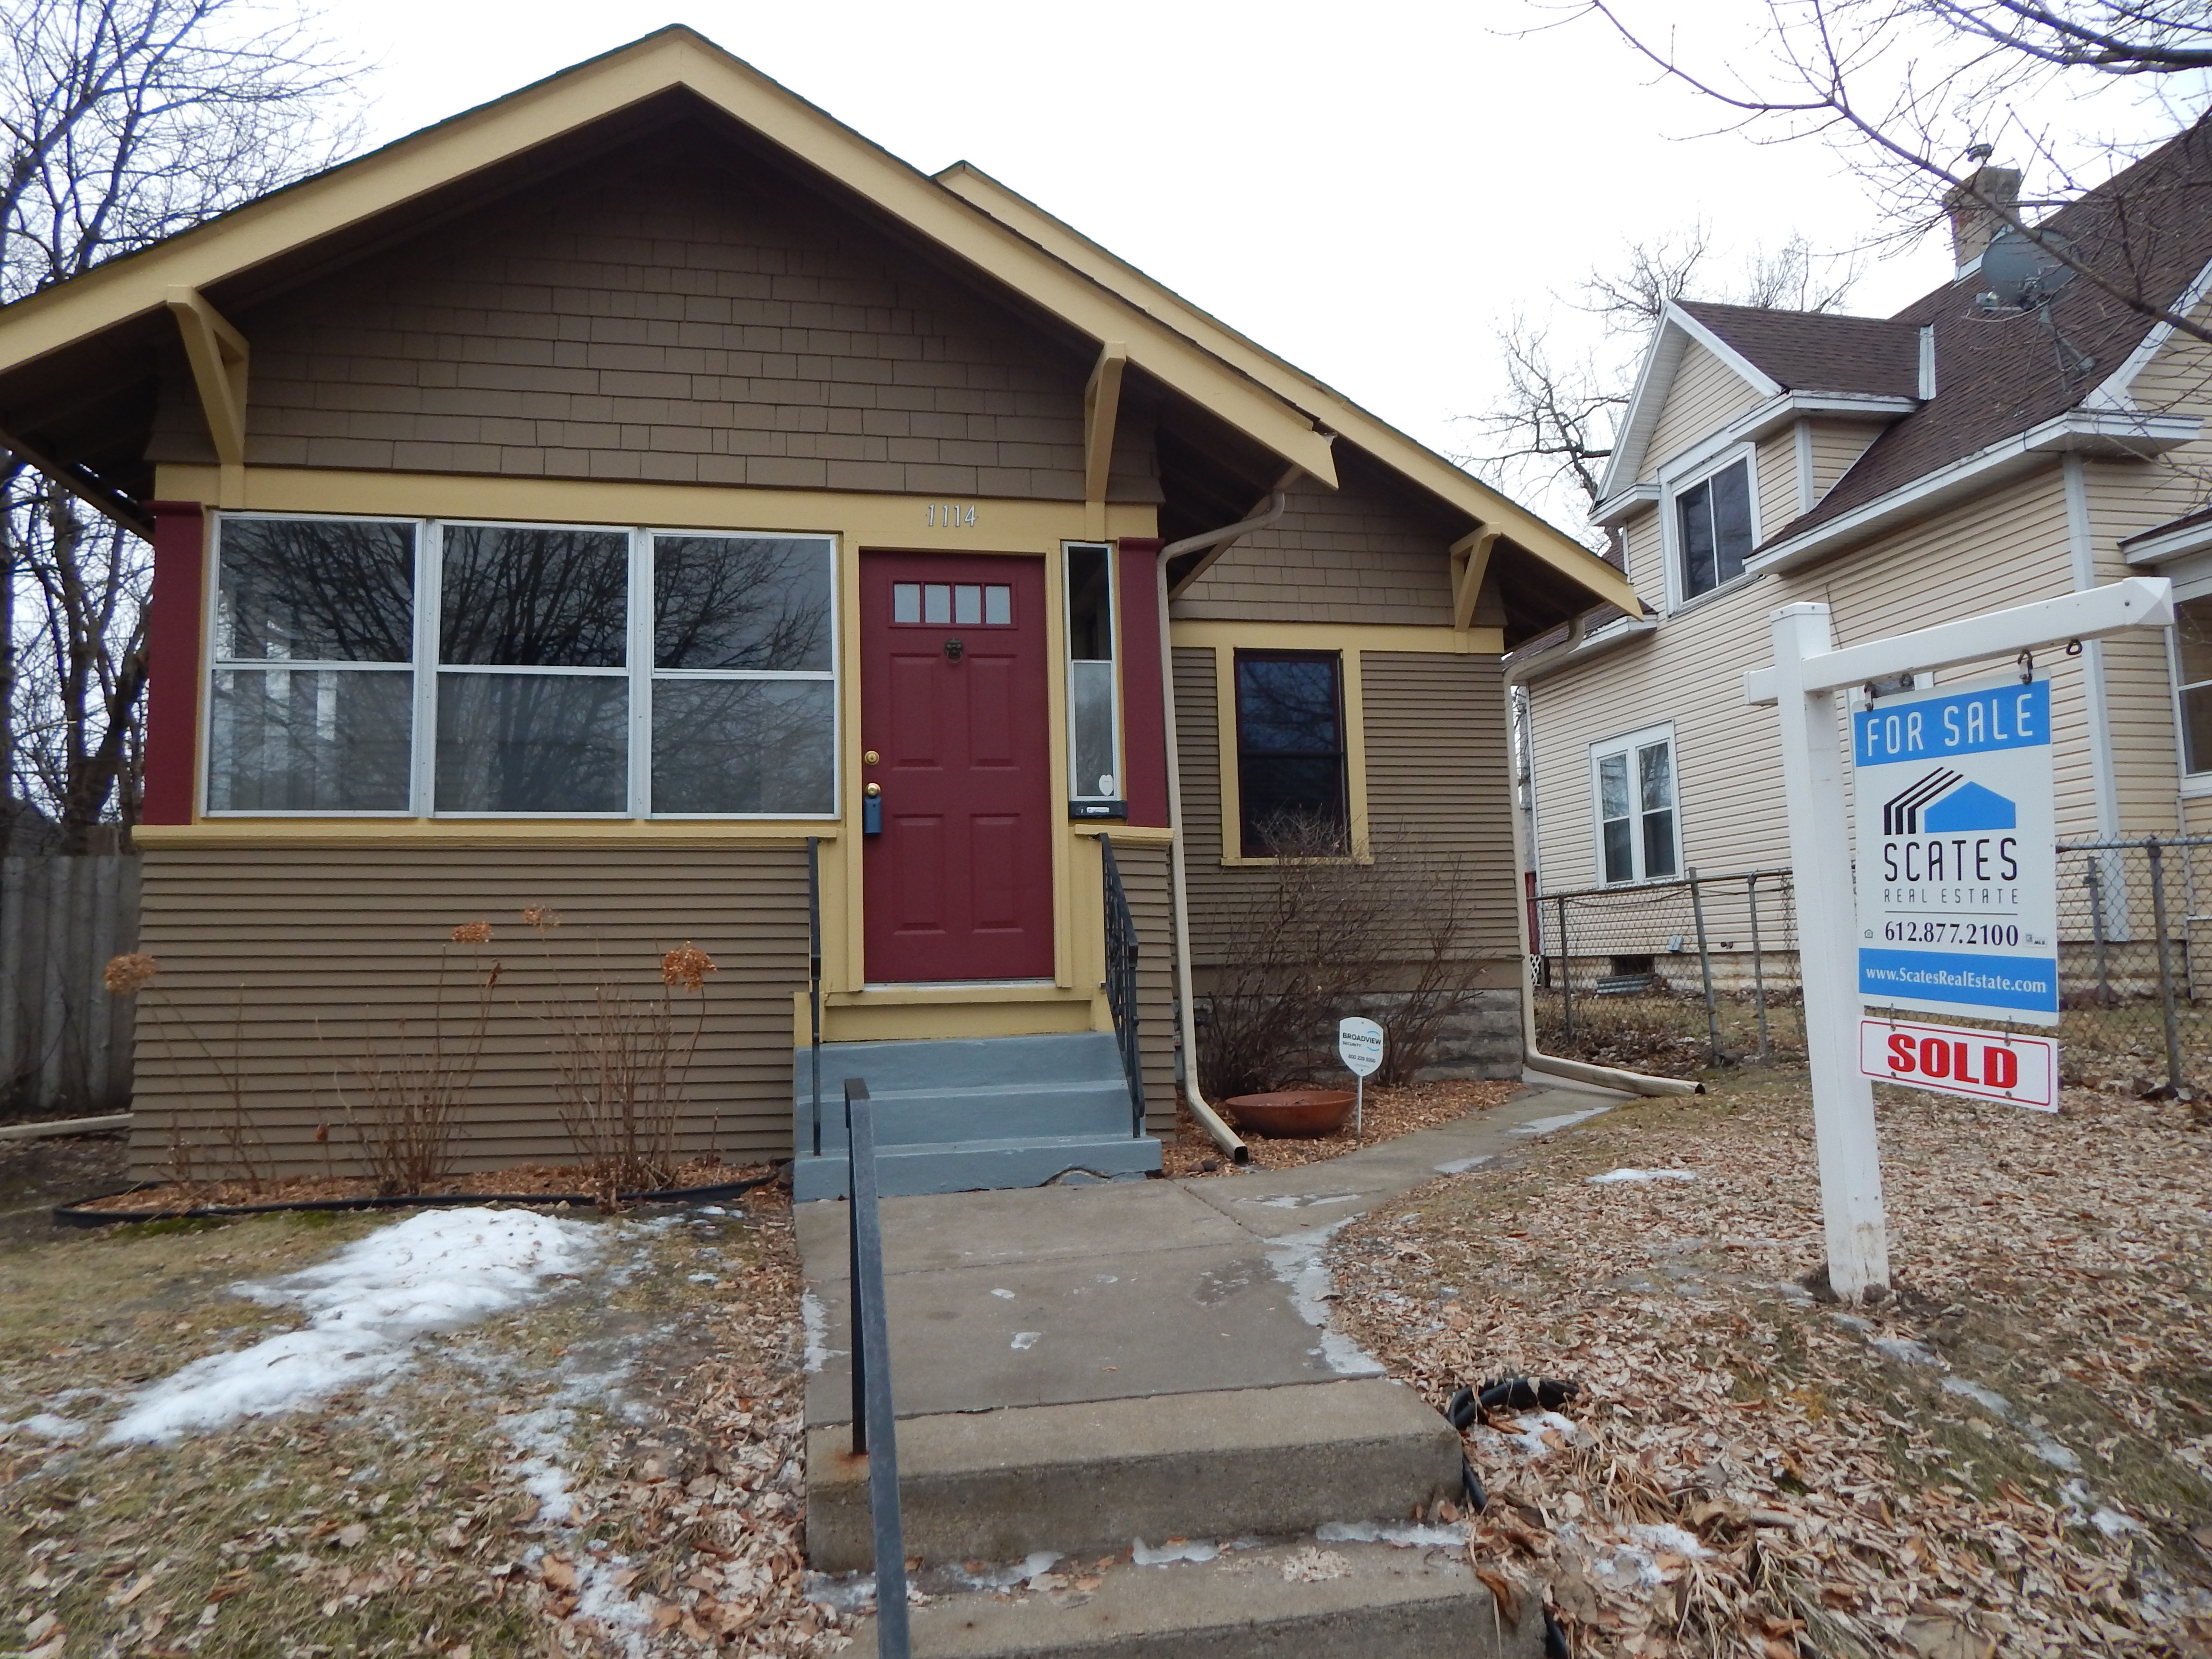 Congratulations Mark & Suzy on selling your home in St. Paul!